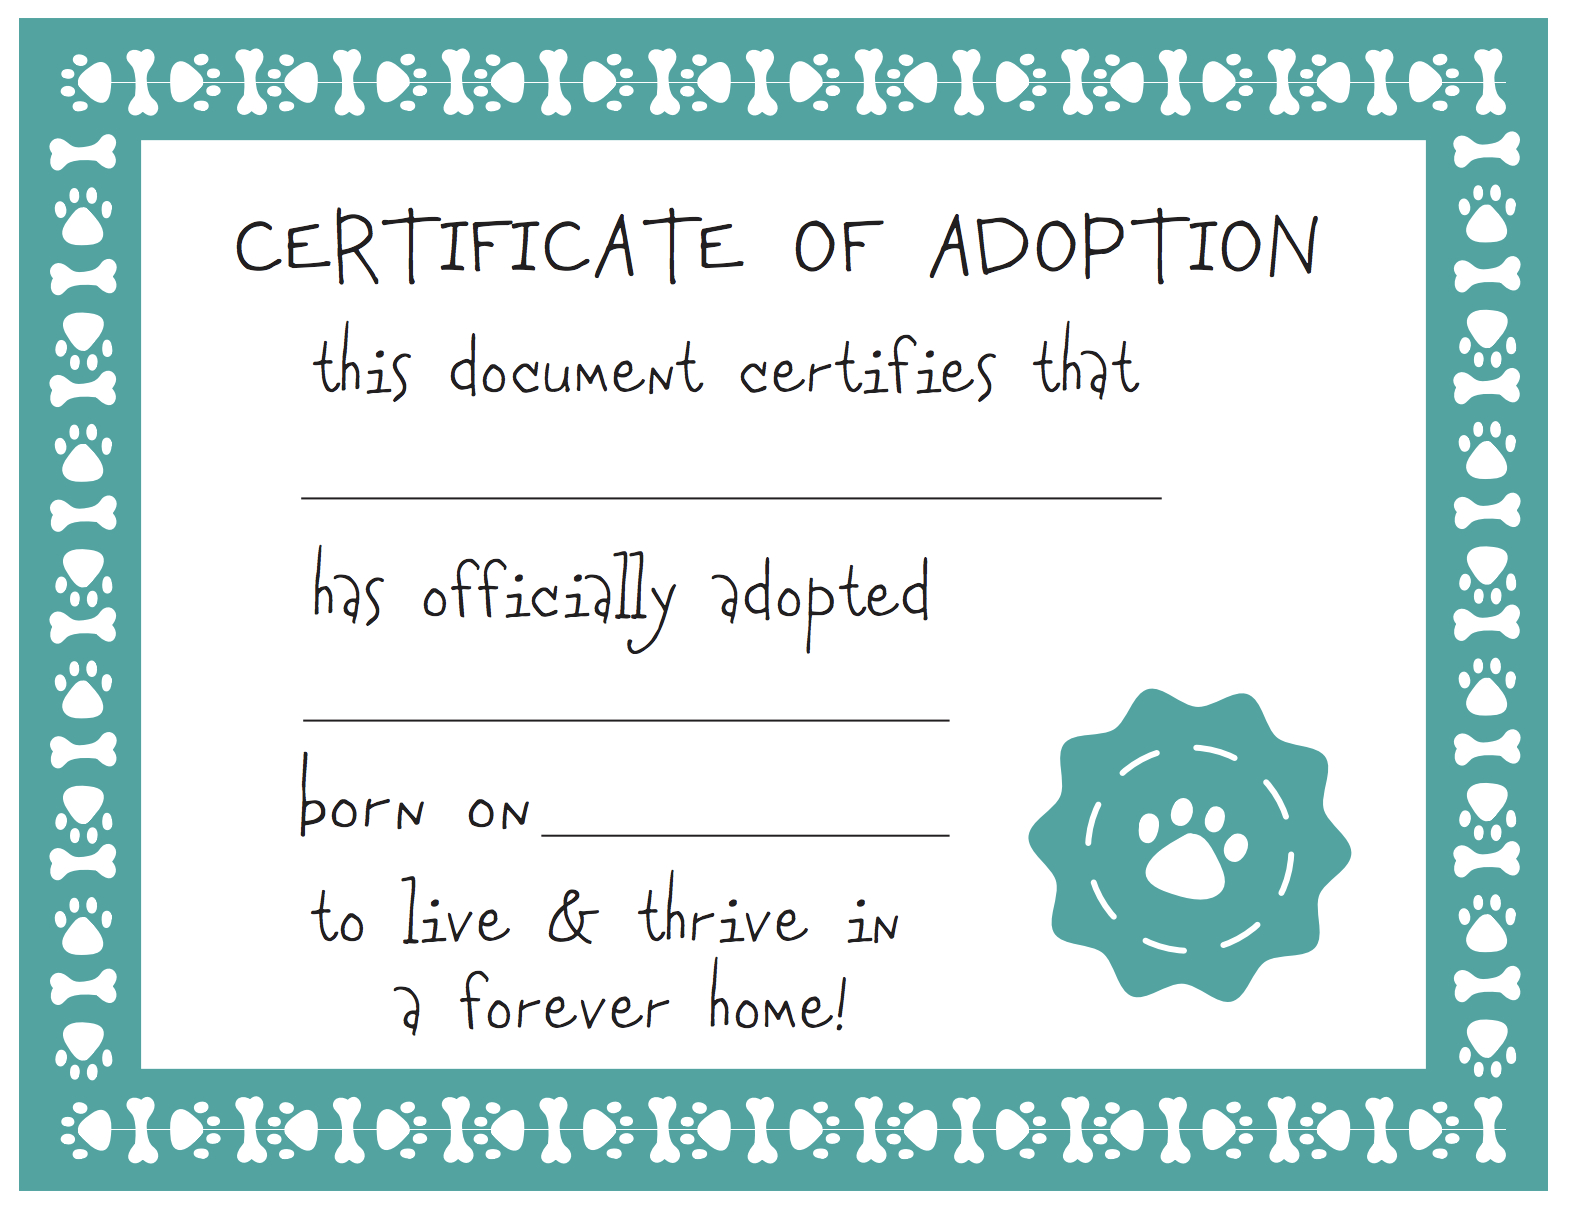 Adoption Certificate Template Free - Demir.iso-Consulting.co - Free Printable Stuffed Animal Adoption Certificate